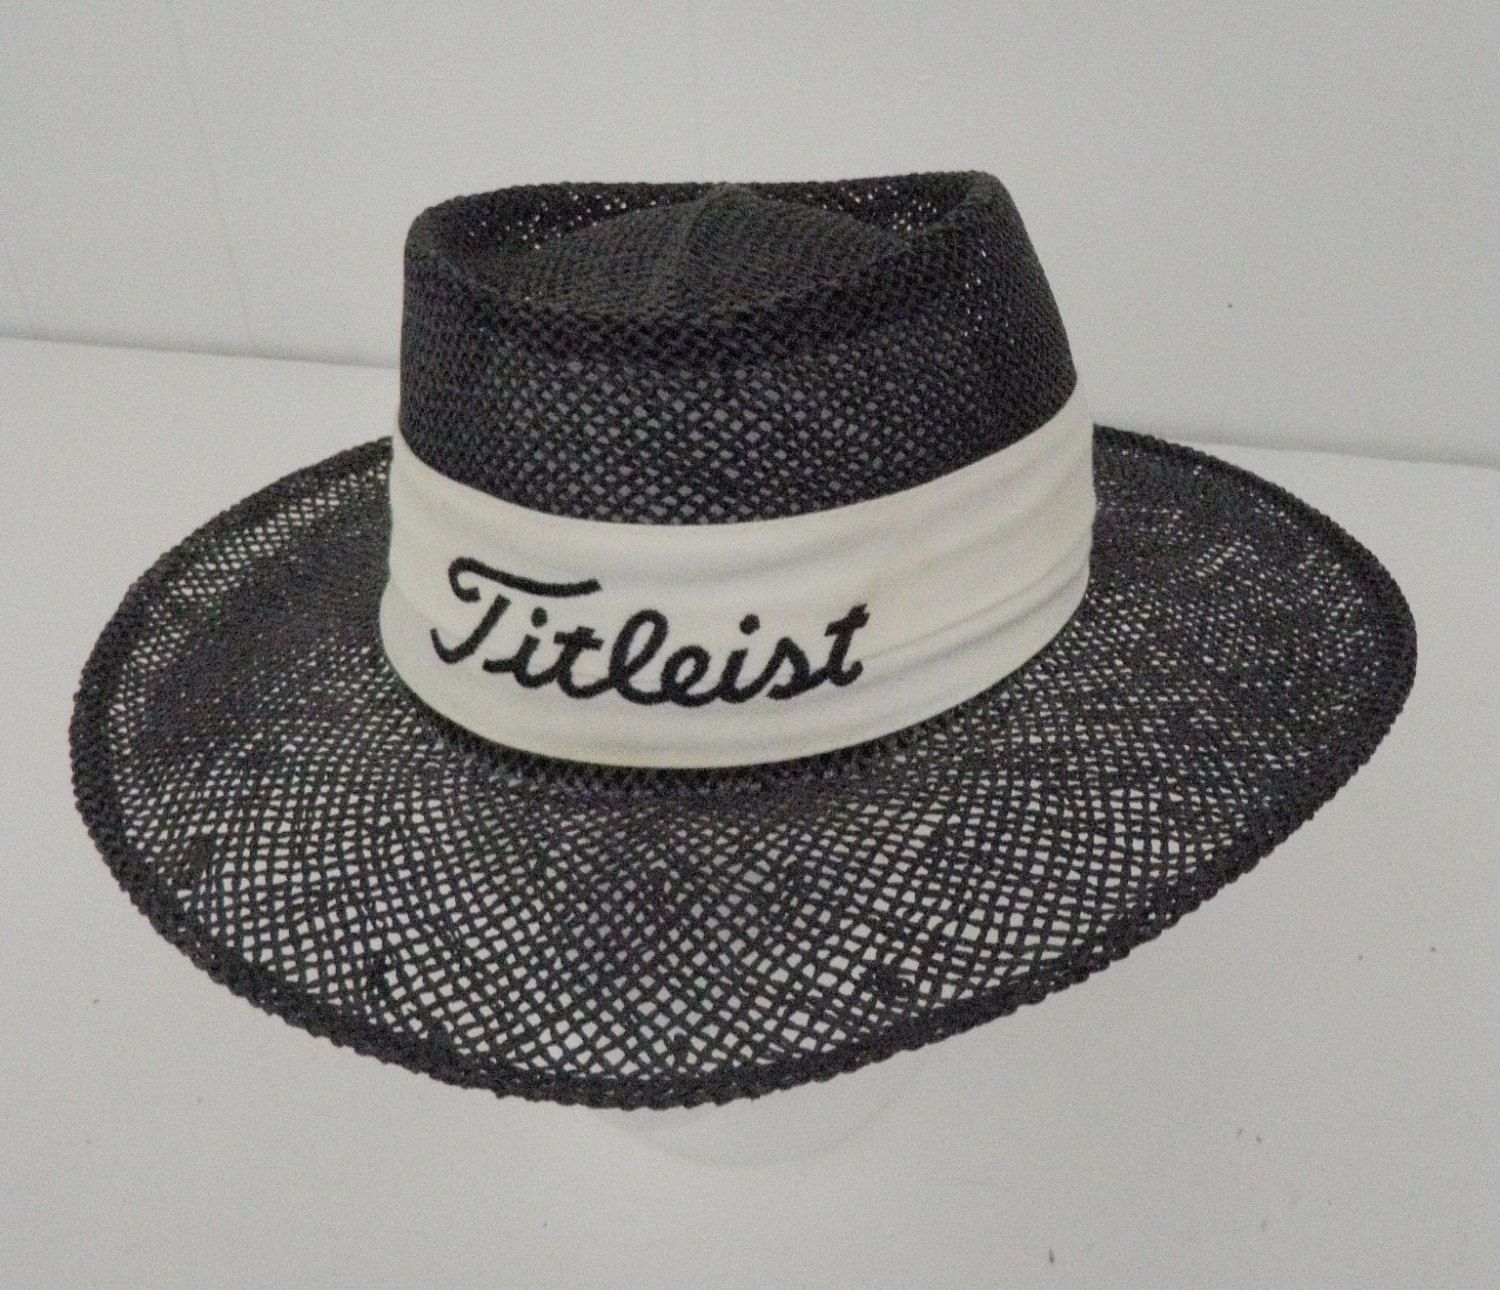 Titleist Vintage Straw Hat Panama Style Wide Brim Black White Golf  Embroidered Yupoong Made in Korea by TraSheeWomen on Etsy  titleist   panamahat  strawhat ... 0463376d44e